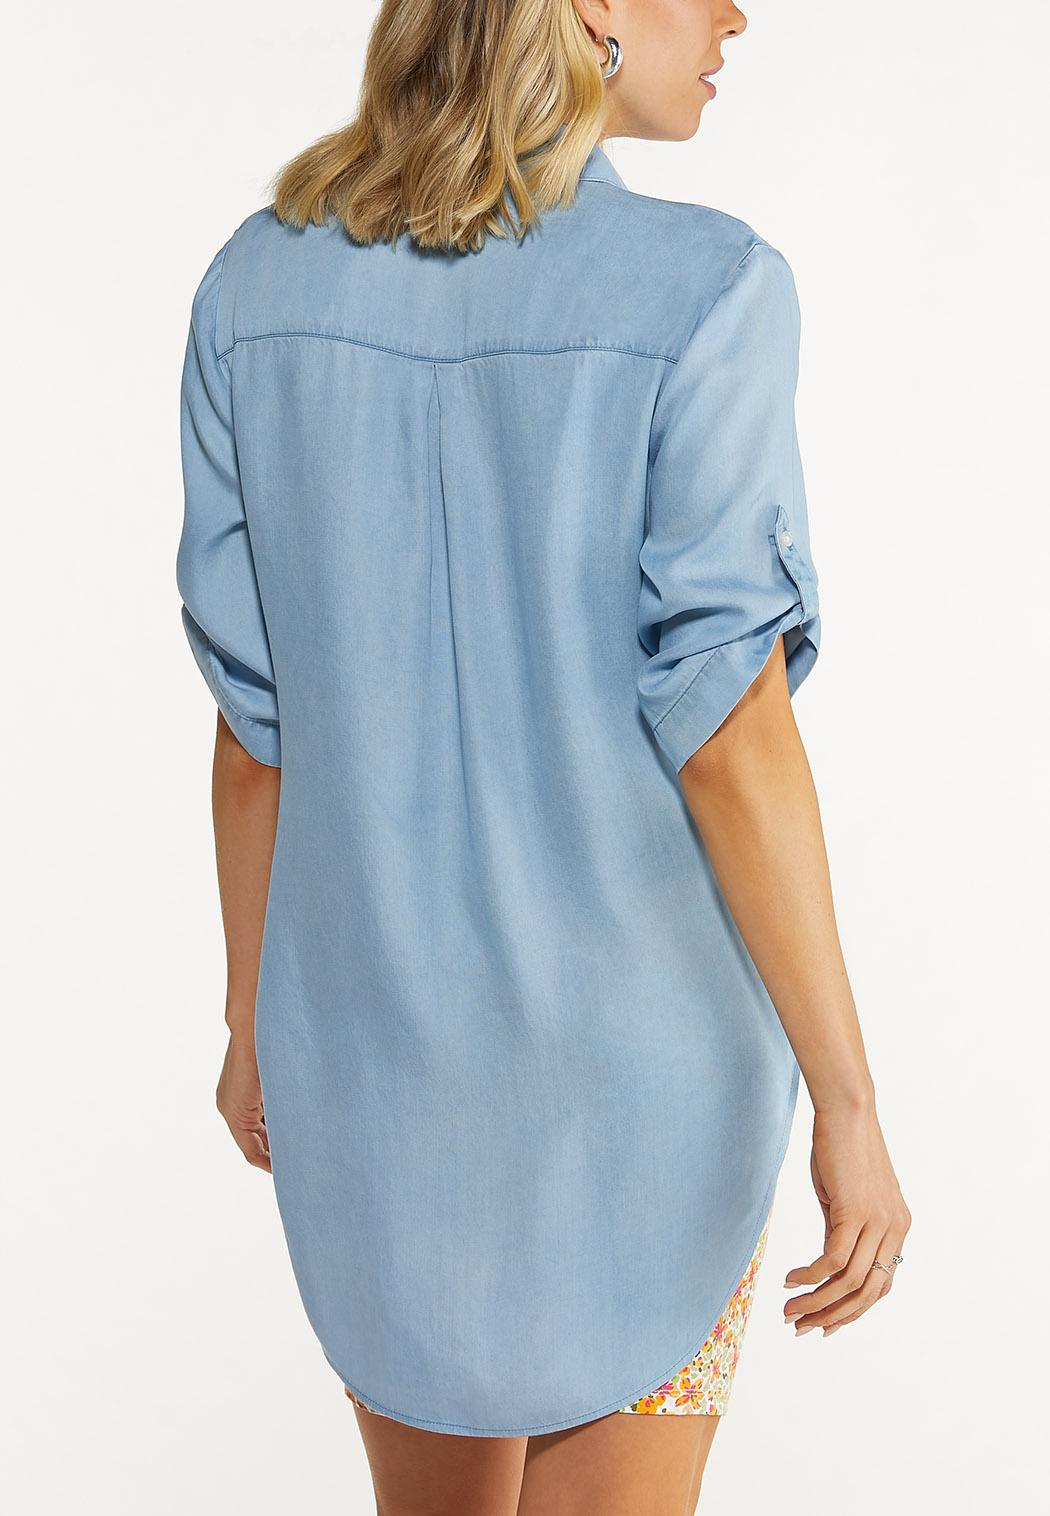 Chambray Pullover Top (Item #44546671)